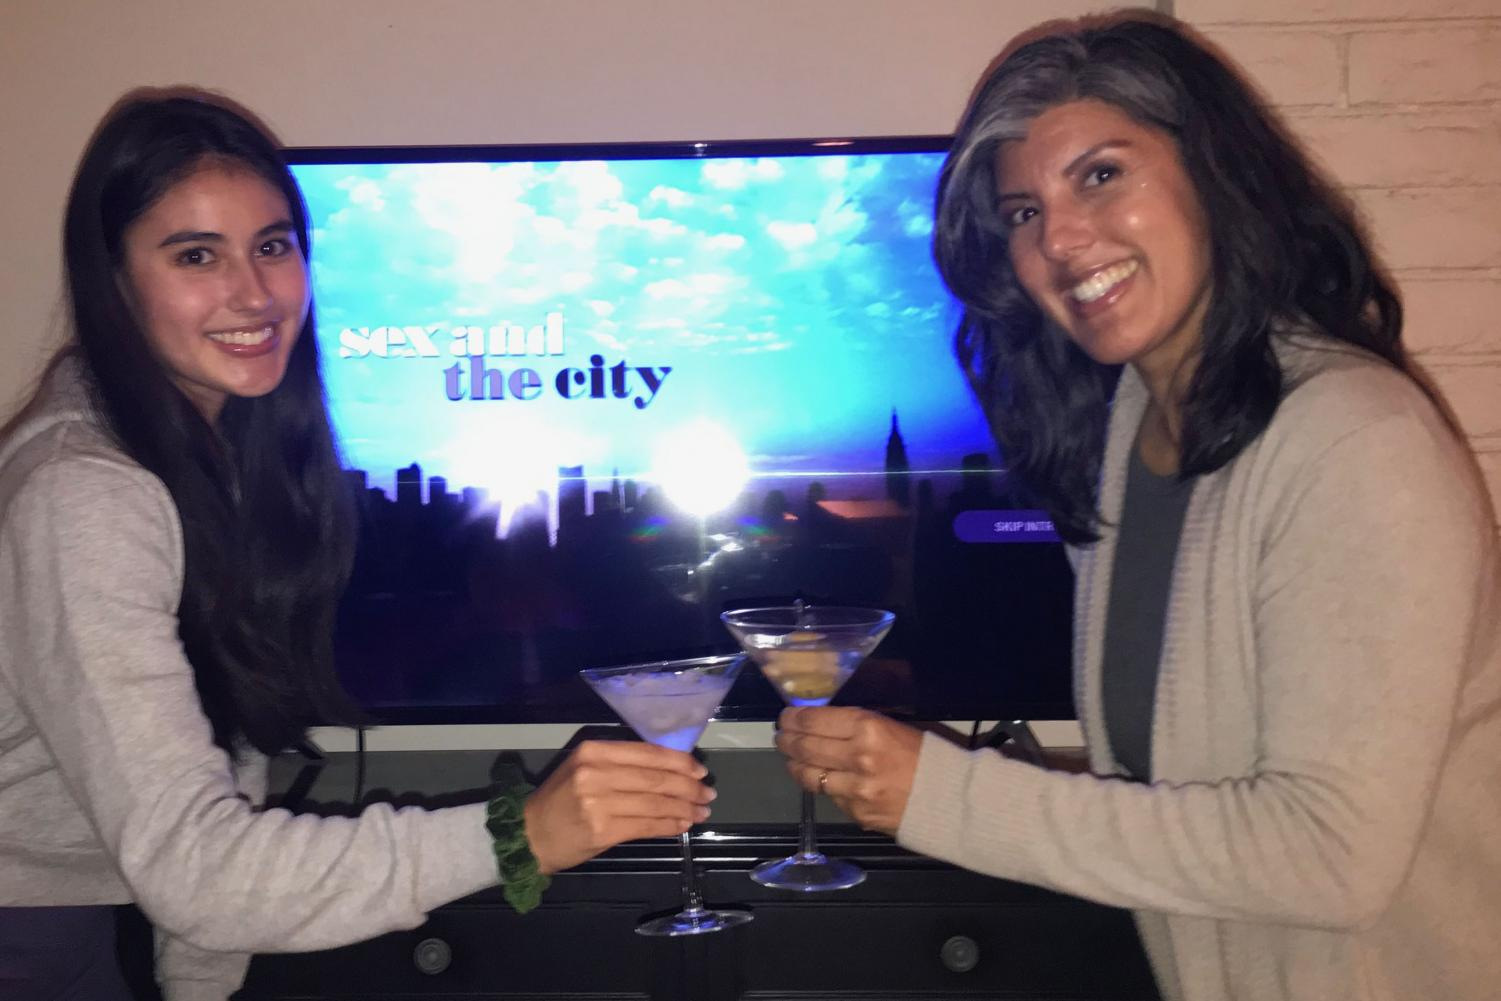 """Carisa Joyner '21 and her mother, Liana Yamasaki, enjoy a casual drink while bingeing """"Sex and the City."""" But don't worry! Joyner's martini glass is filled with ice and water."""